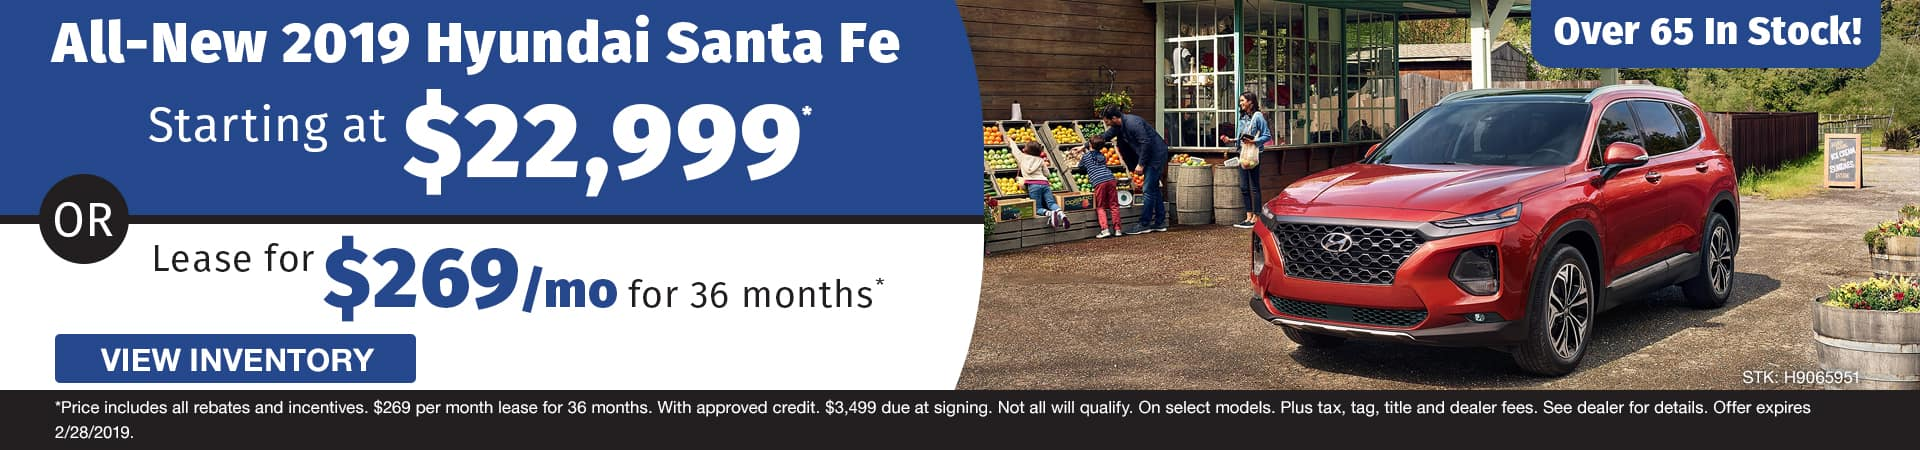 New 2019 Hyundai Santa Fe models starting at $22,999 or lease for $269 a month in Murfreesboro TN